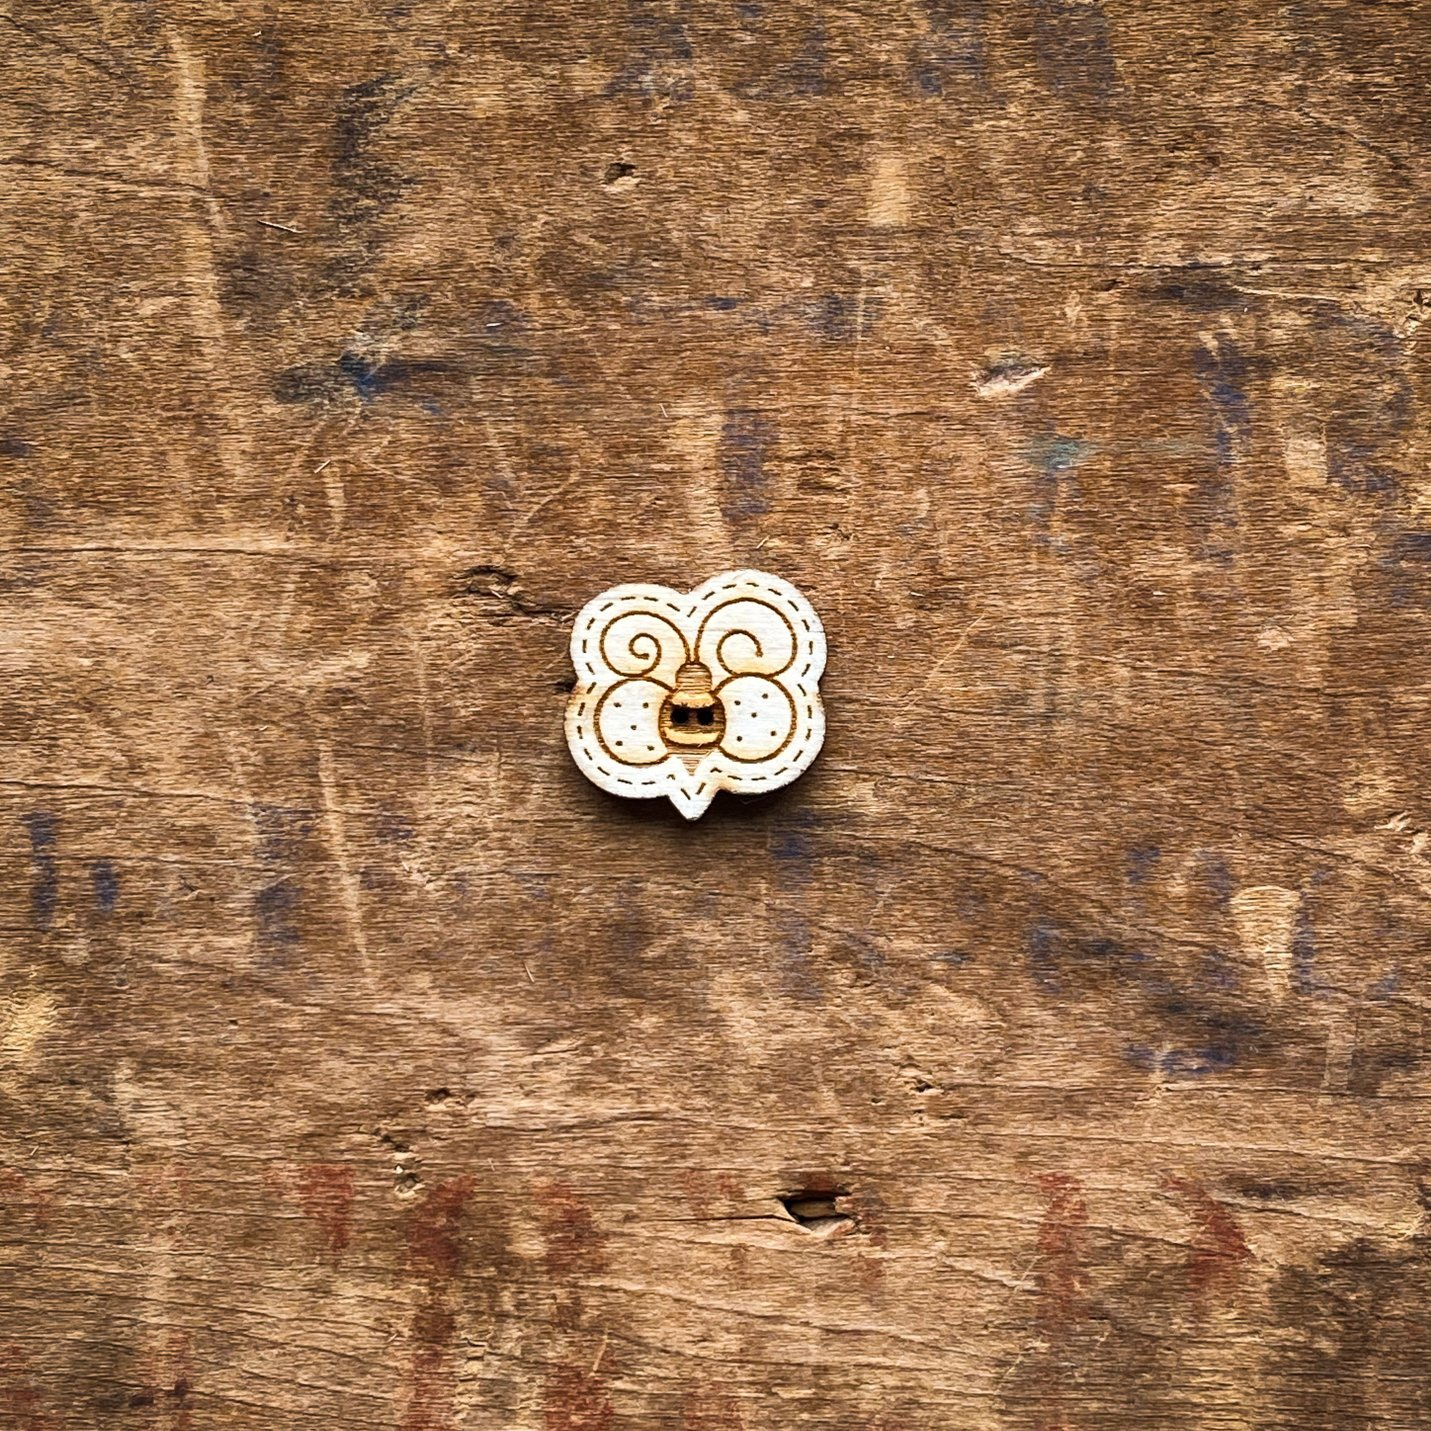 Bumble Bee Wooden Button